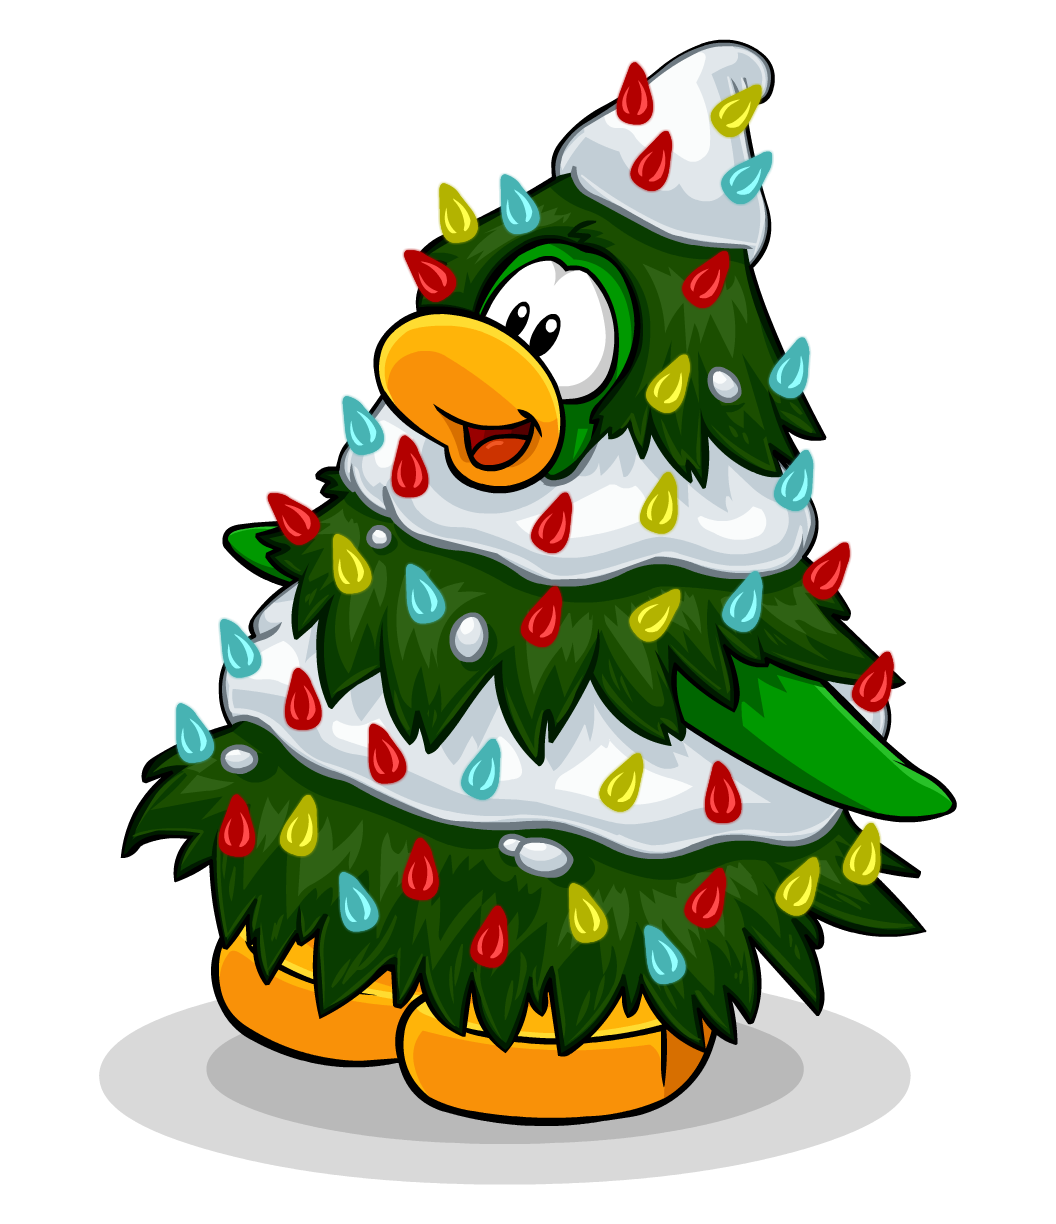 Tree Wall Stickers For Kids Image Tree Costume Happy Holidays Postcard Png Club